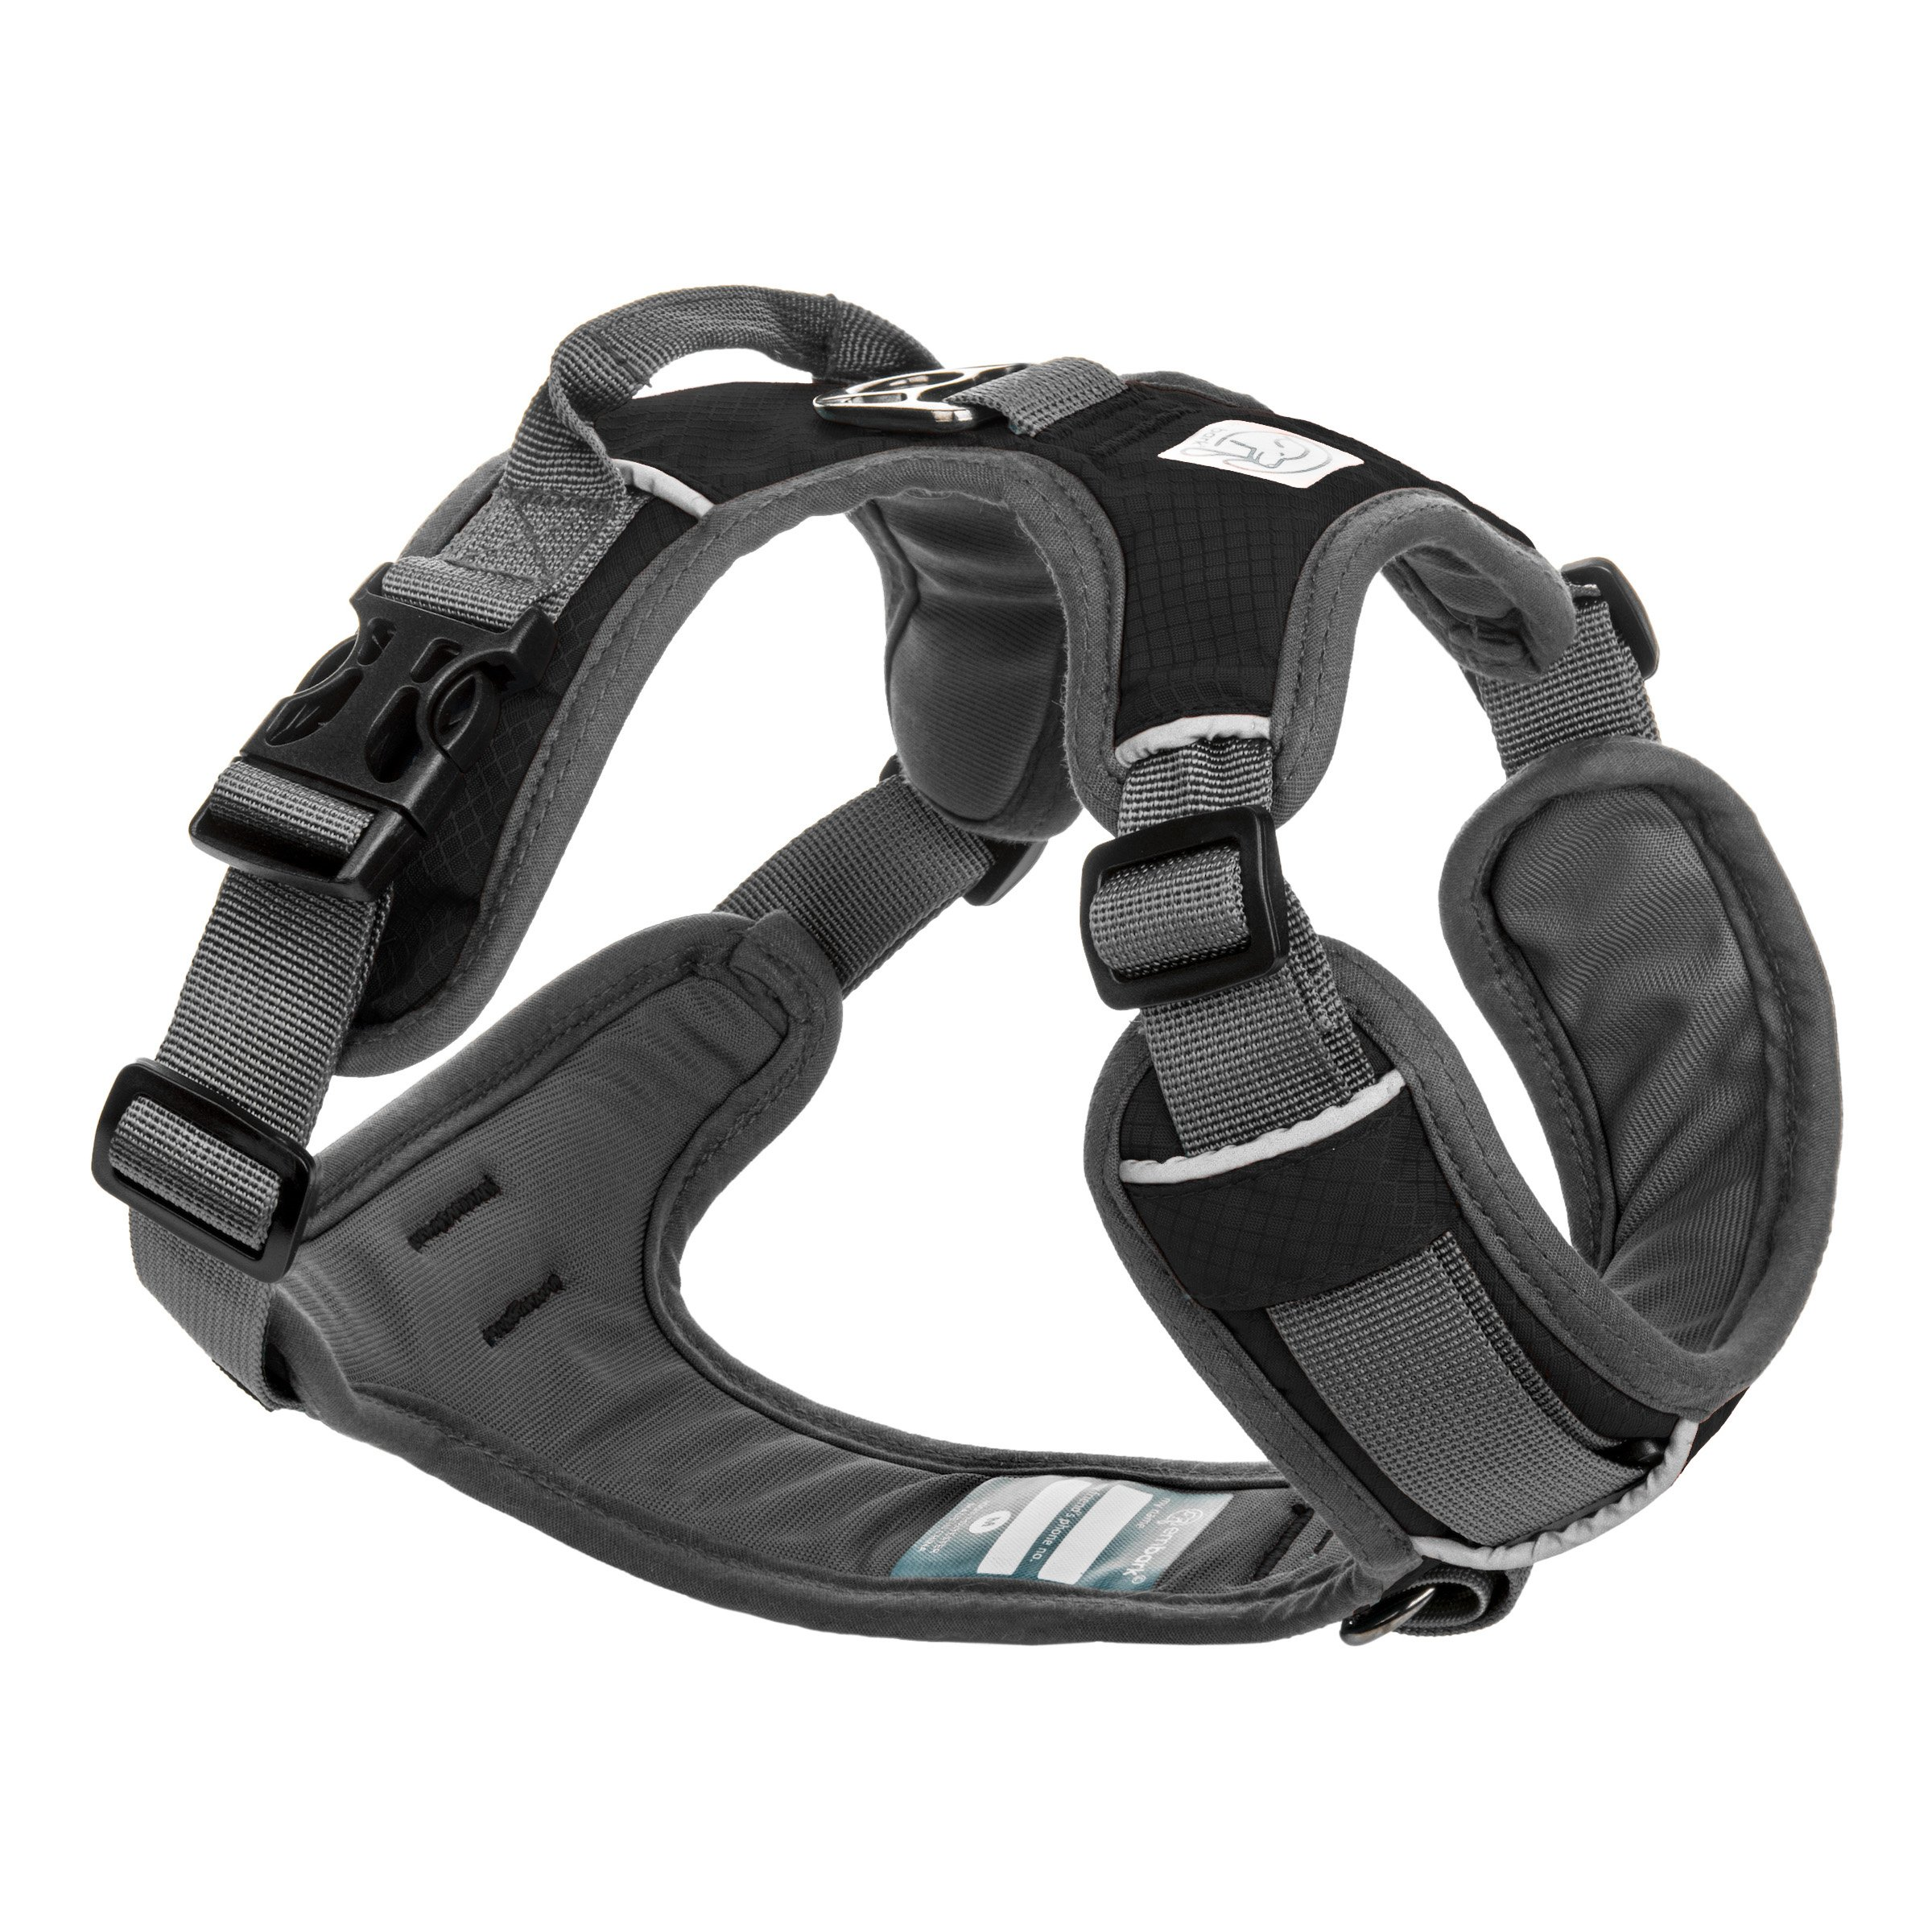 Embark Active Dog Harness Medium Size, Easy On and Off with Front and Back Leash Attachment Points & Control Handle - No Pull Training, Size Adjustable and No Choke (Medium - Black)